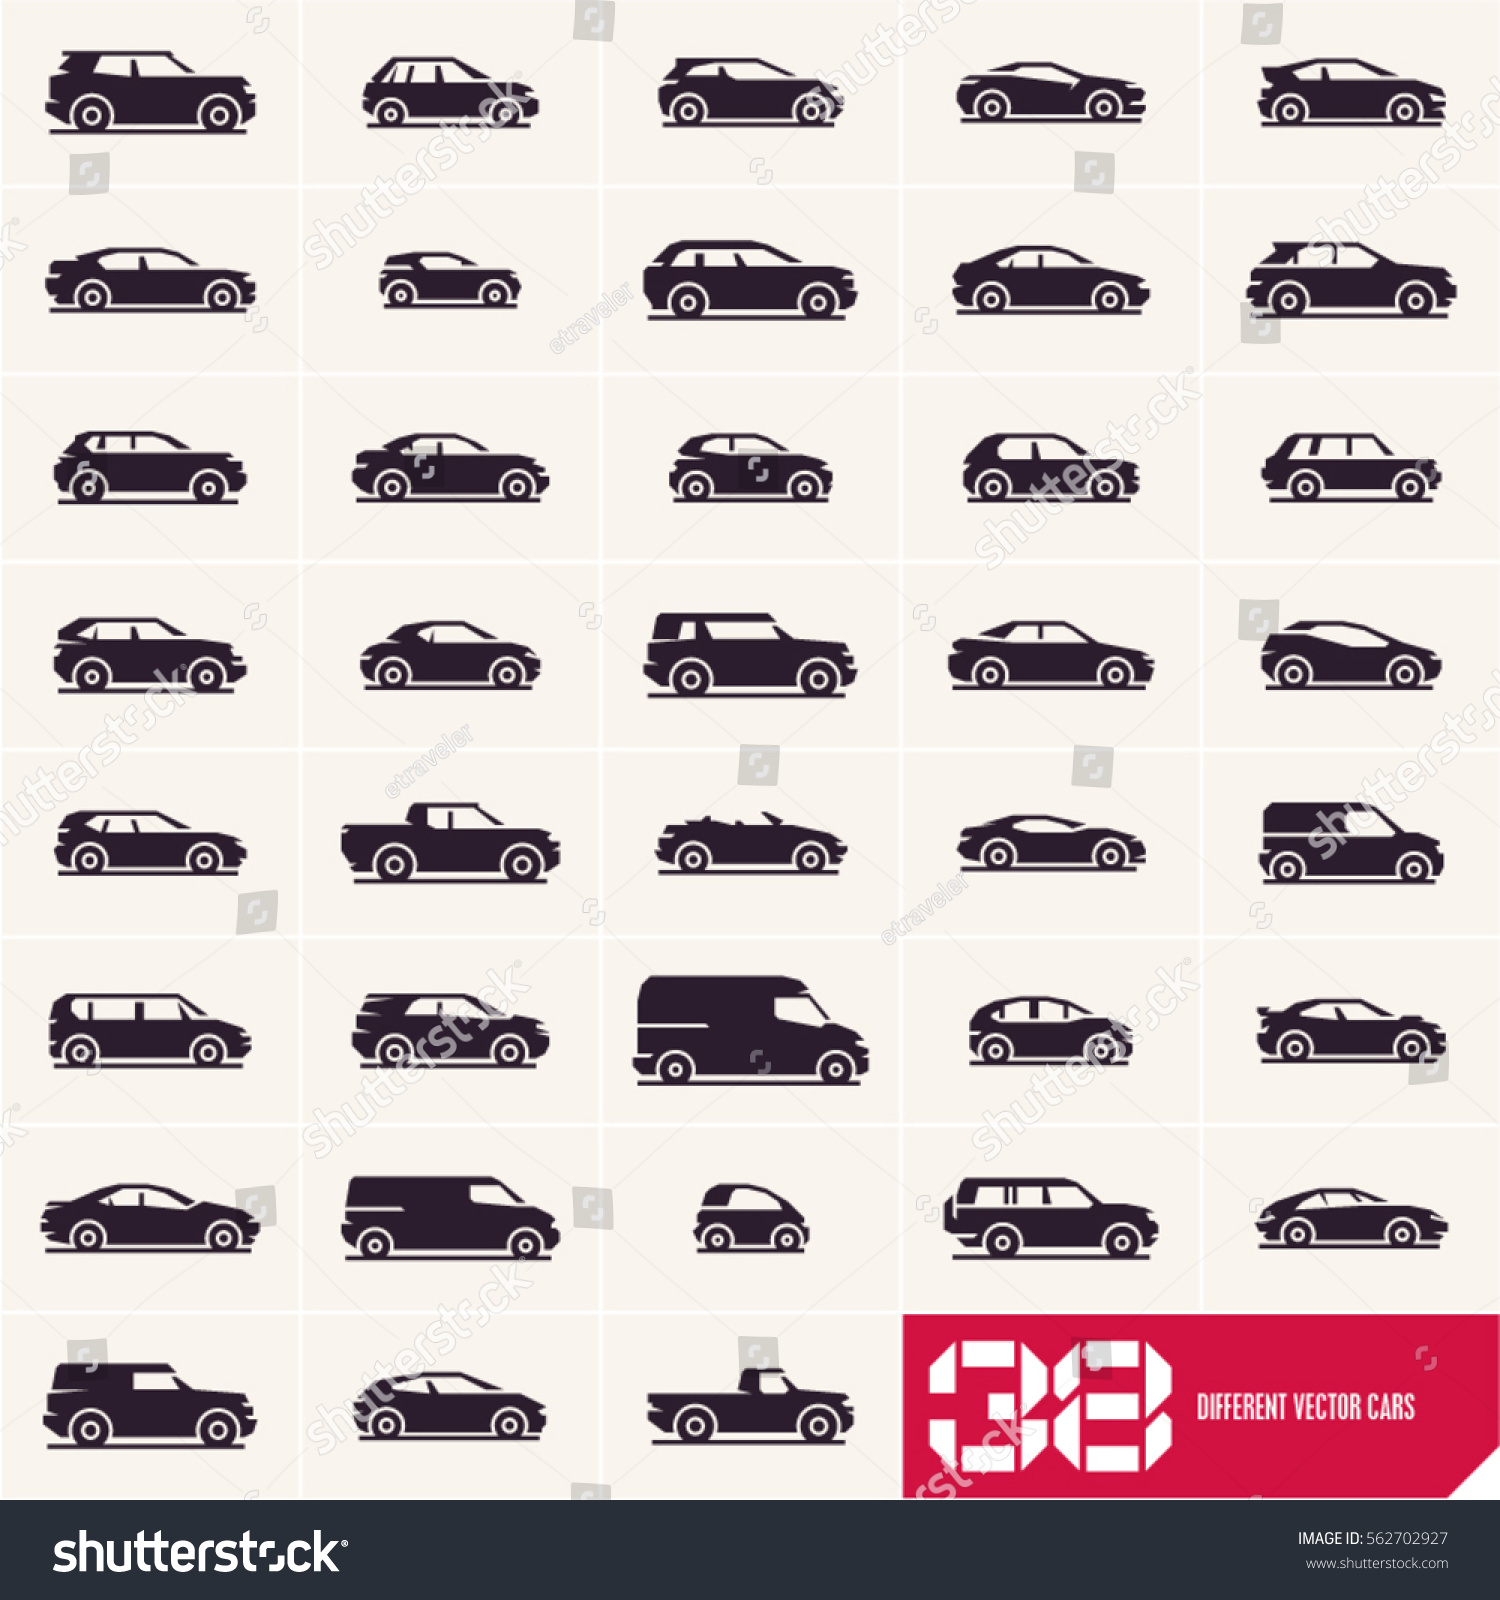 cars icons set different vector car types silhouettes